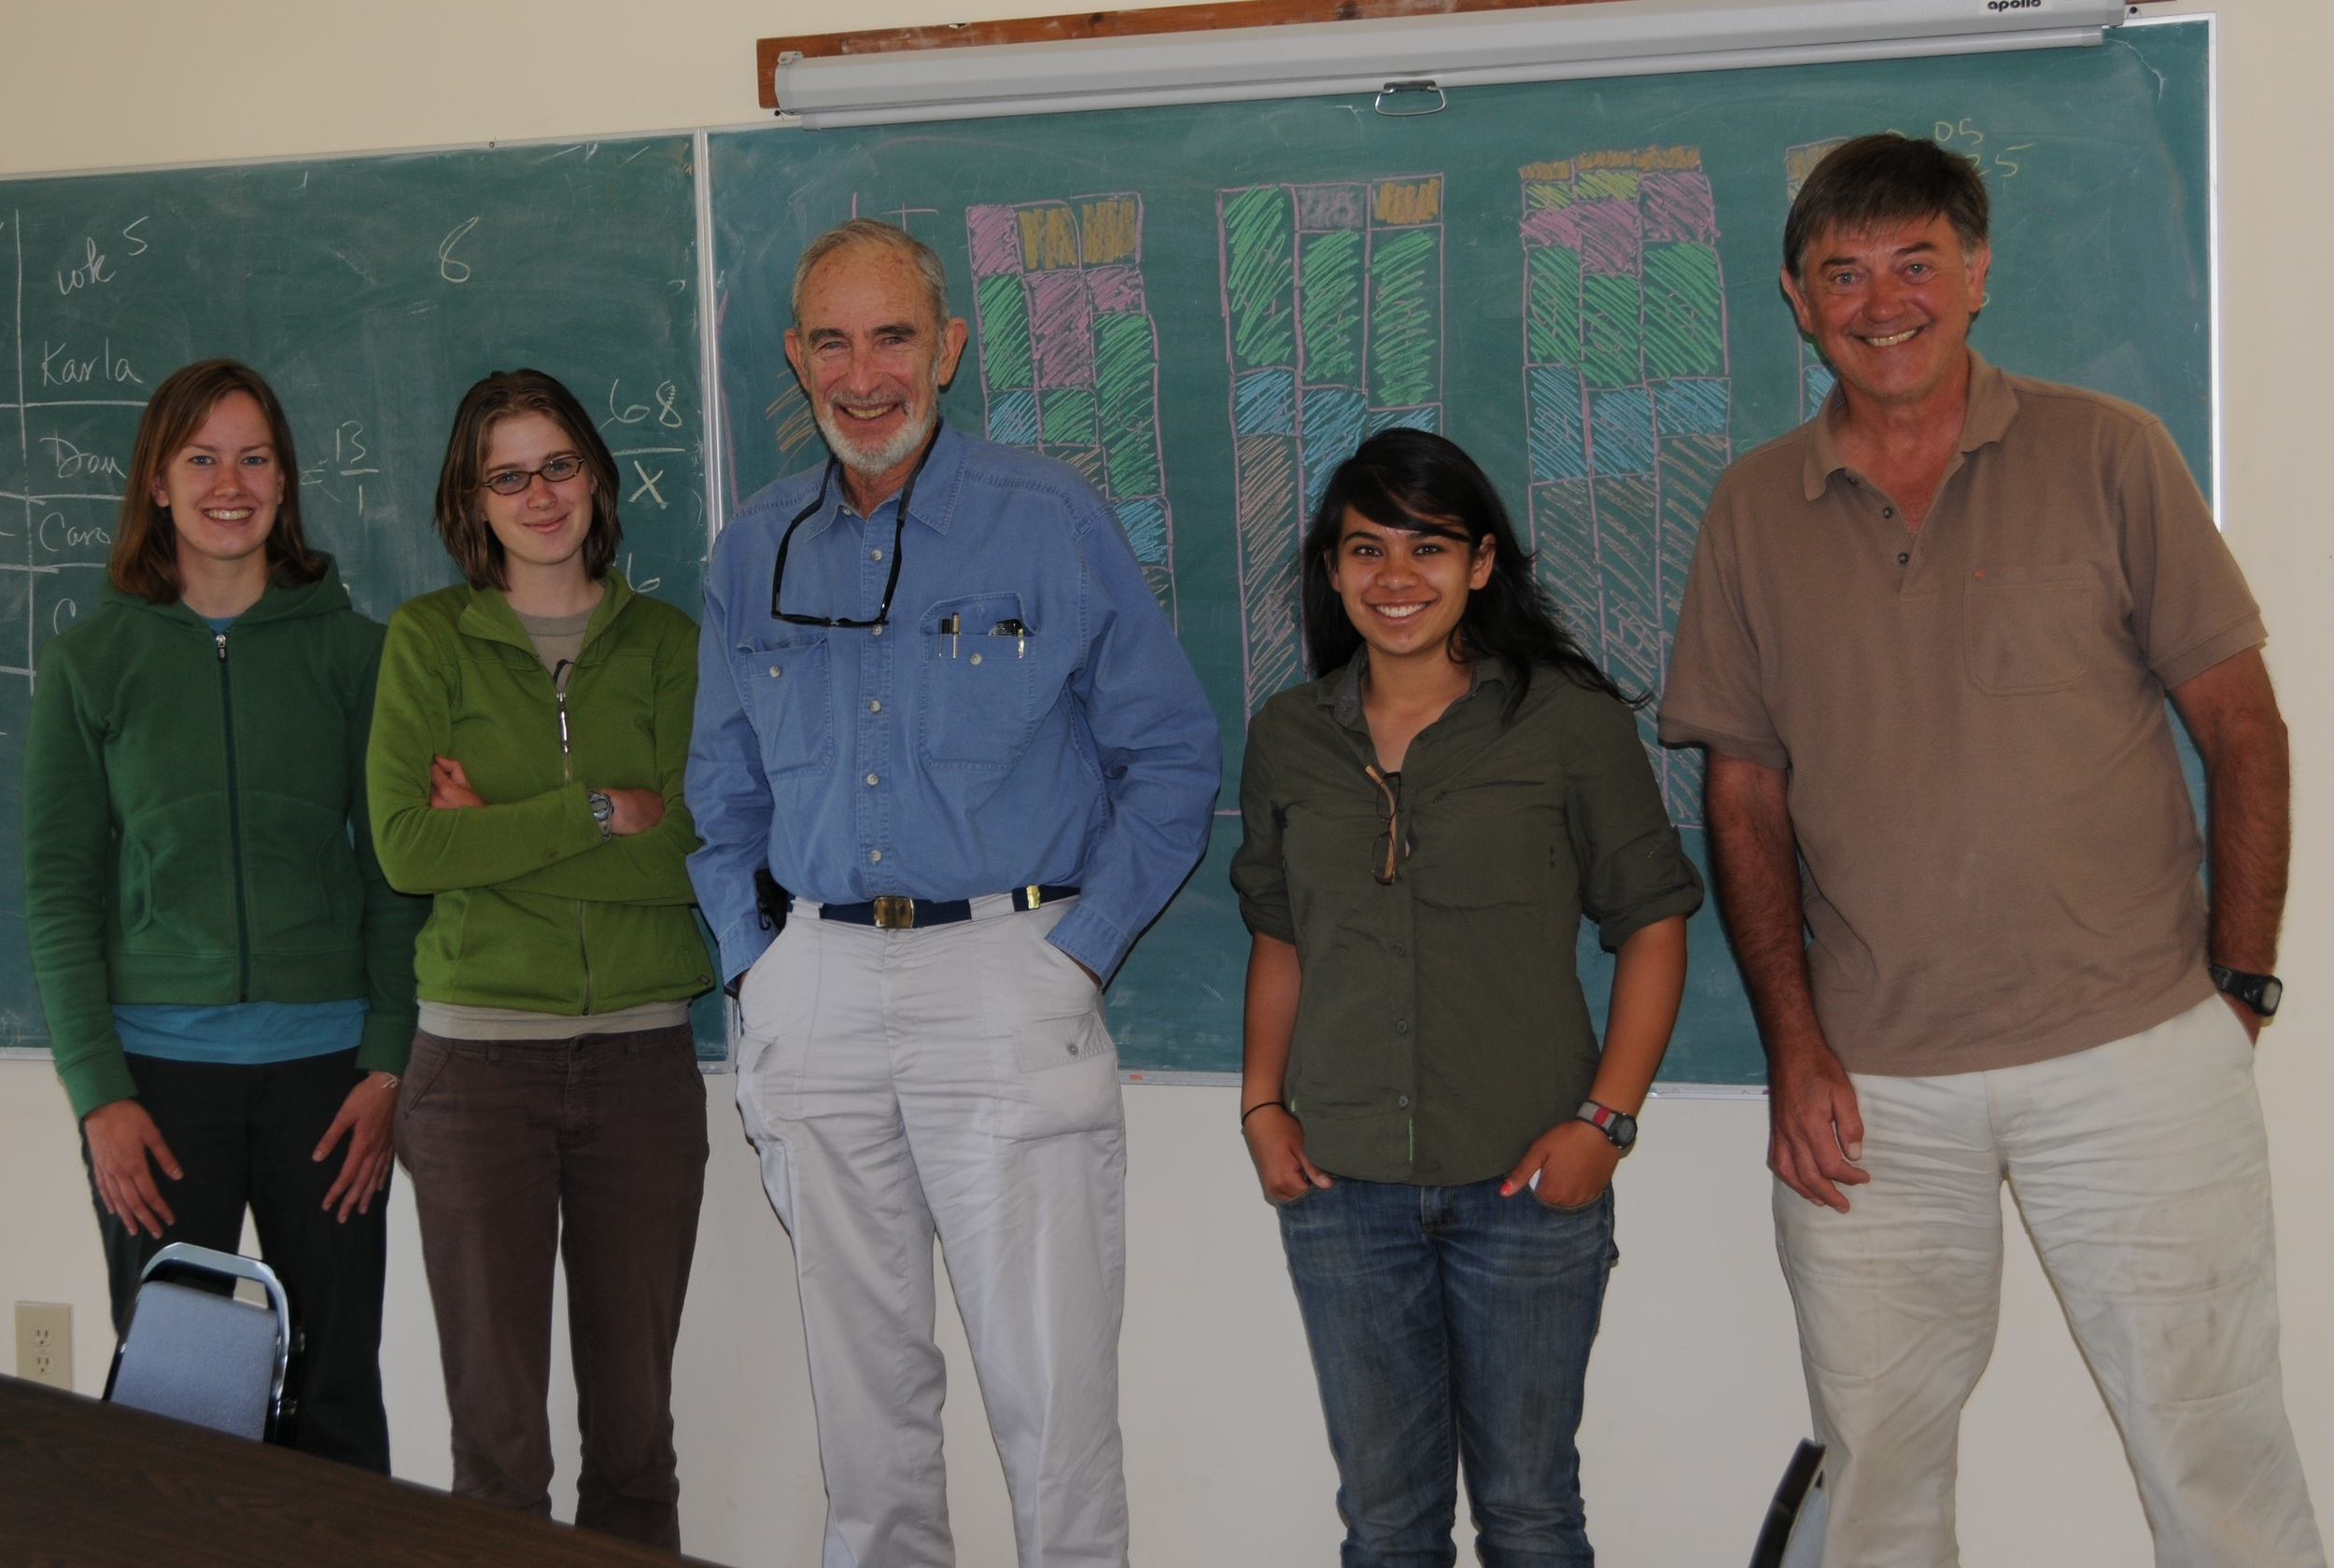 With Paul Ehrlich & students in classroom at Rocky Mt Biological Laboratory, Colorado